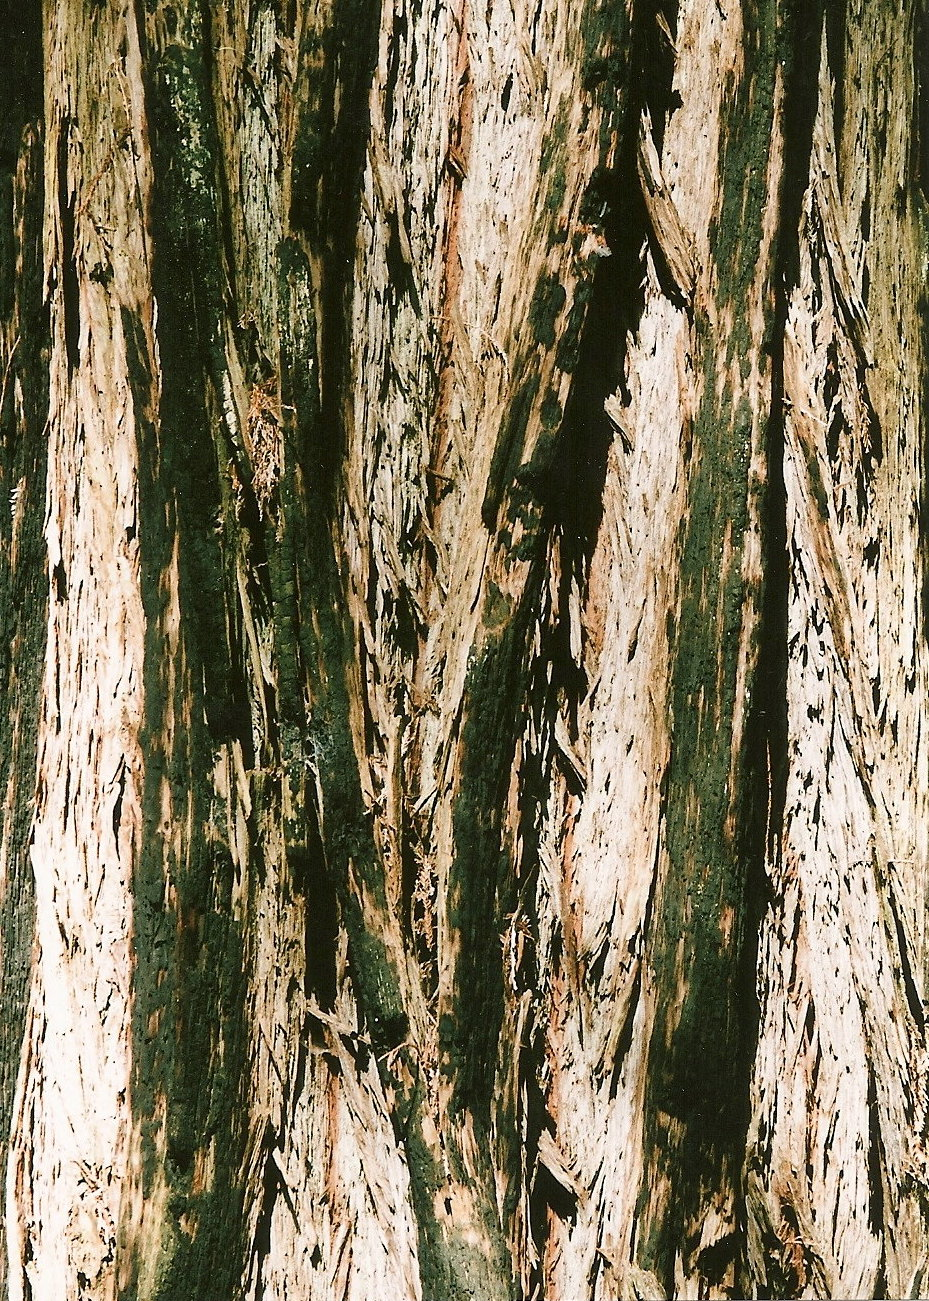 I ALSO LOVE THE DESIGNS ON THE BARK